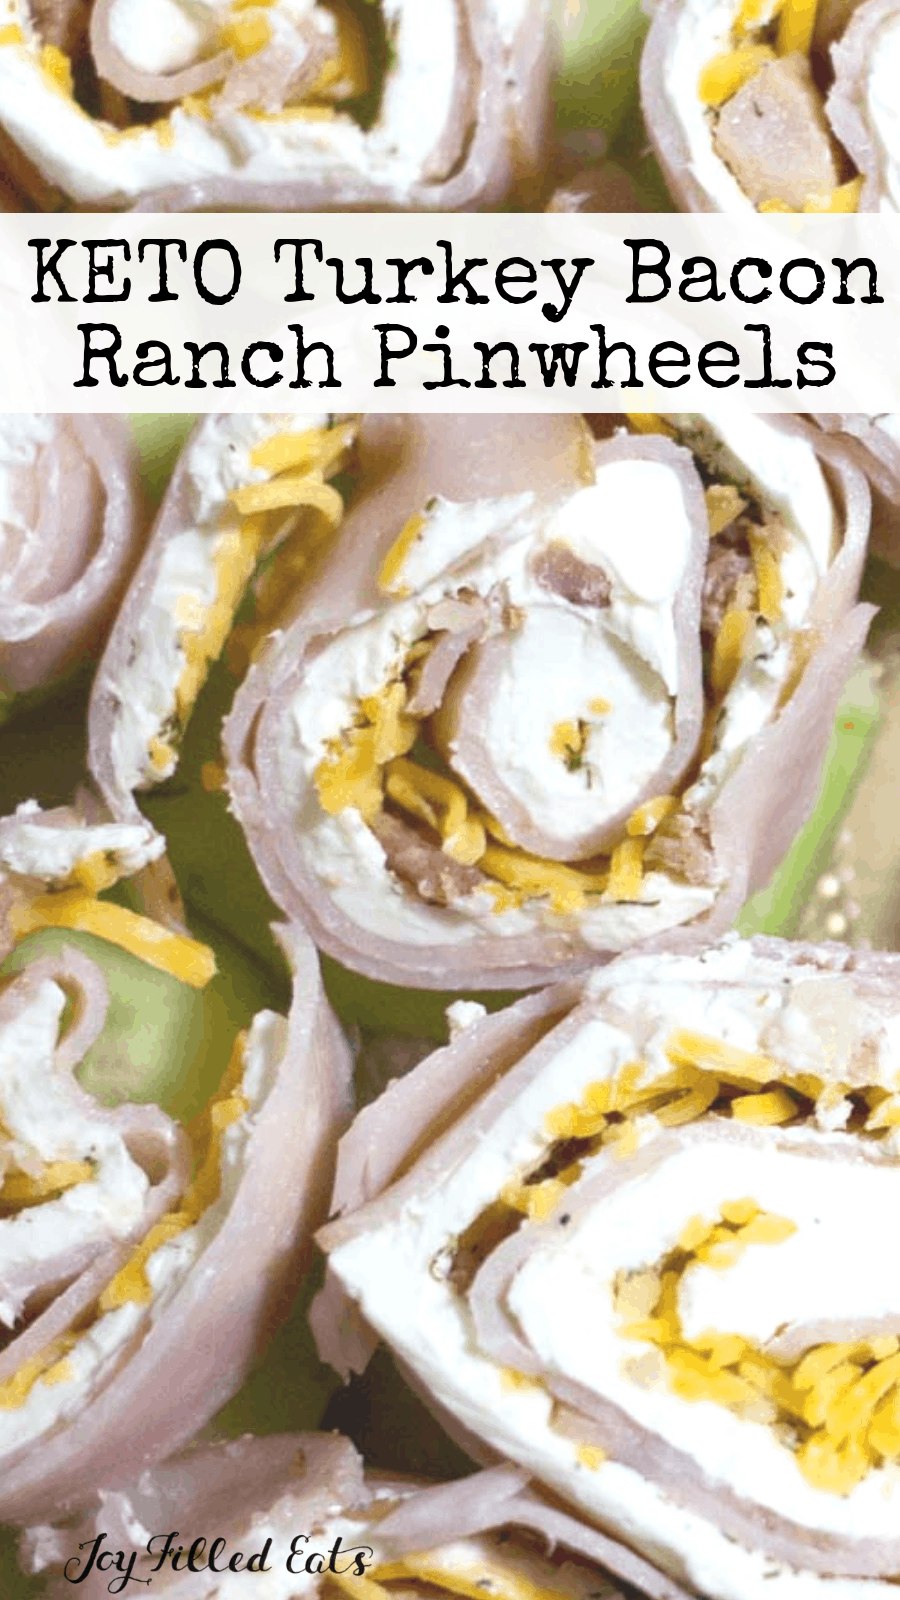 Turkey Bacon Ranch Pinwheels - Keto, Low Carb, Gluten-Free, Grain-Free, THM S - These are a crowd-p